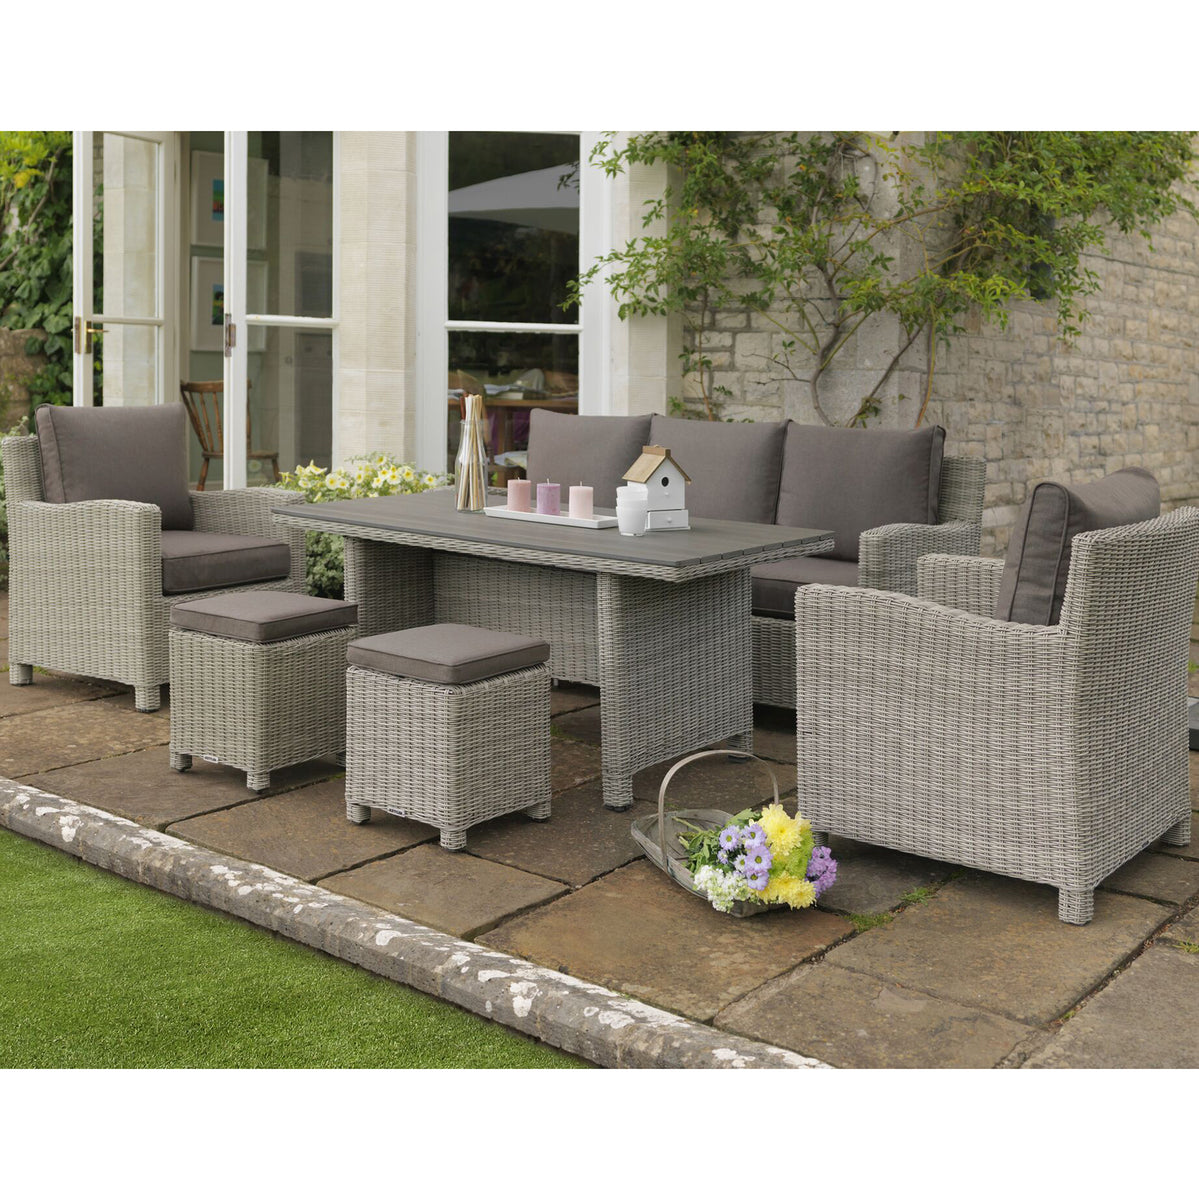 Kettler Palma Rattan Outdoor Casual Dining Sofa Set With Slatted